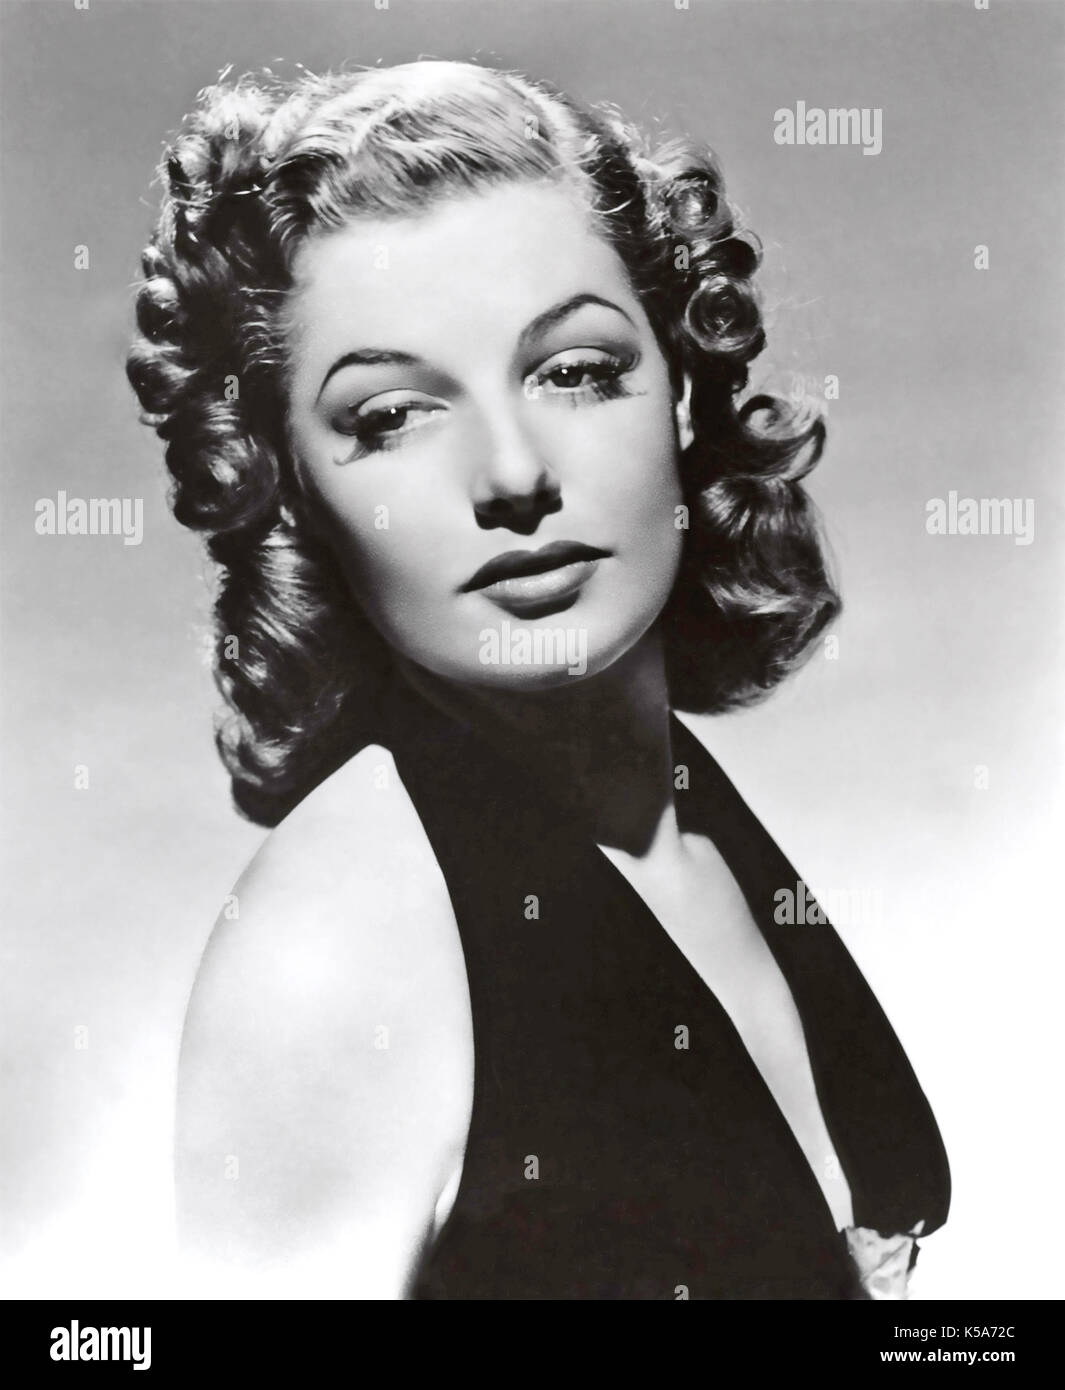 1940s Actresses Who Inspire Us To Heat Up The Hot Rollers | HuffPost